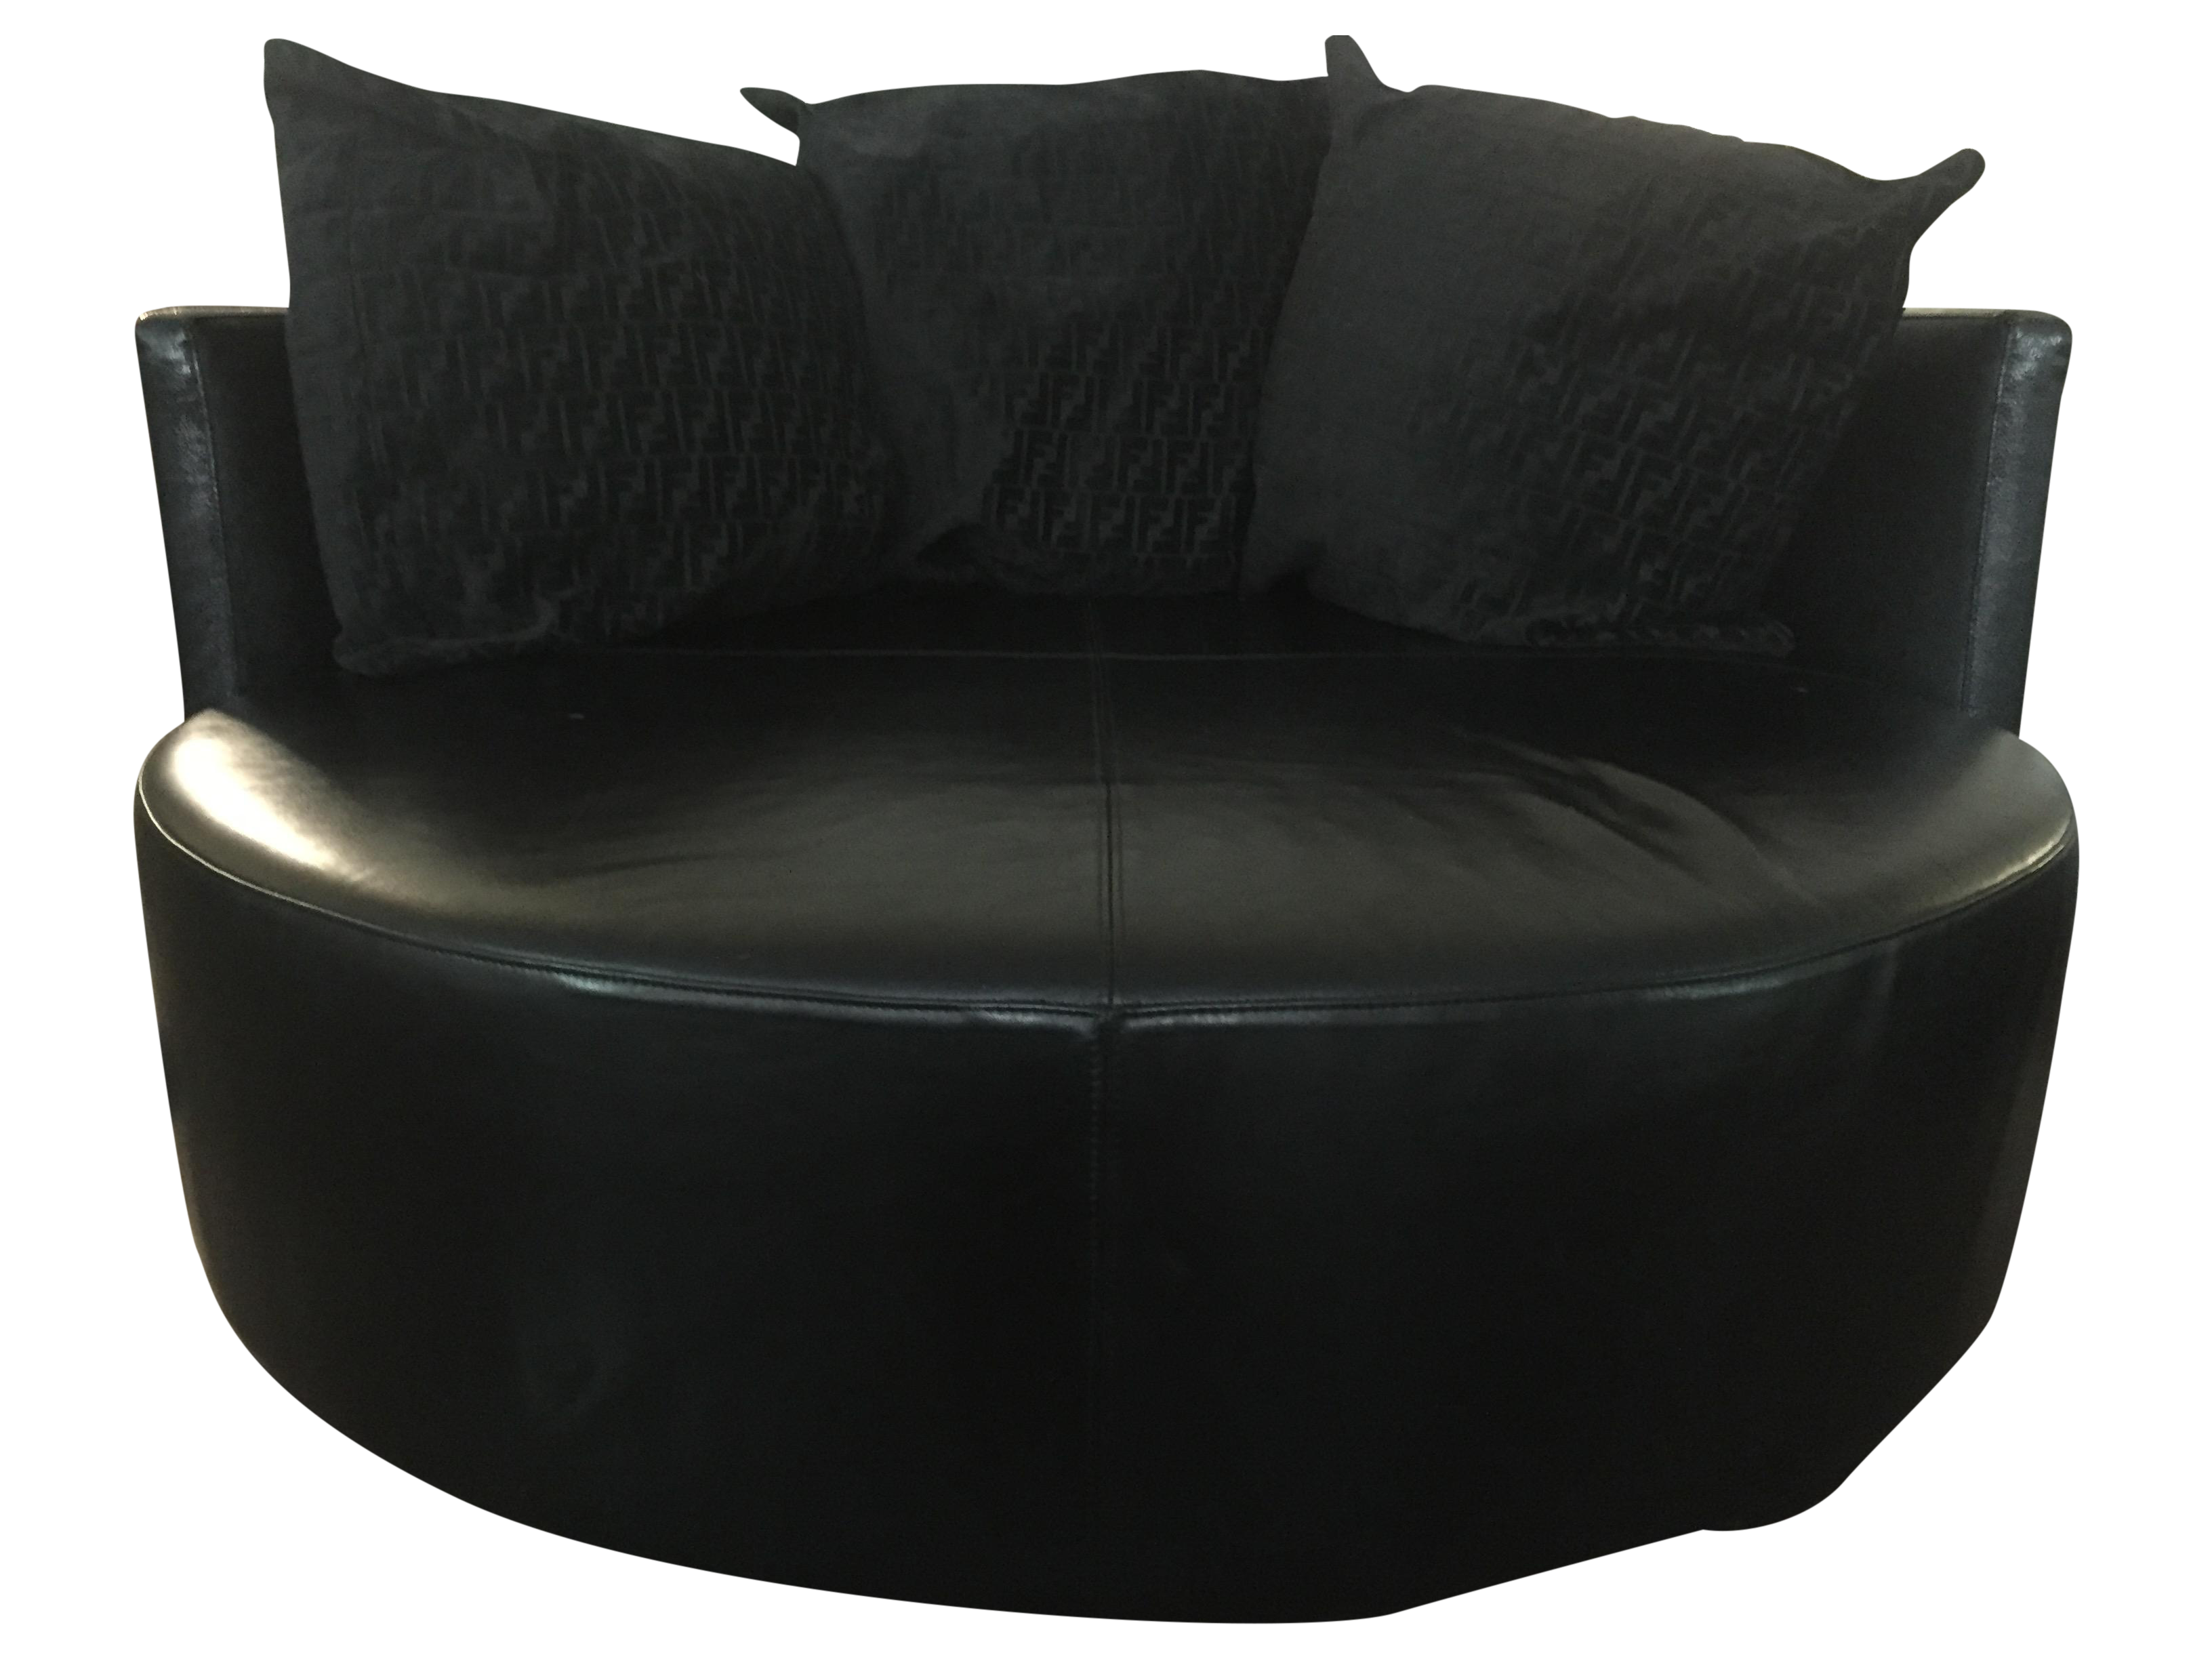 Black couch png. Fendi casa stingray leather